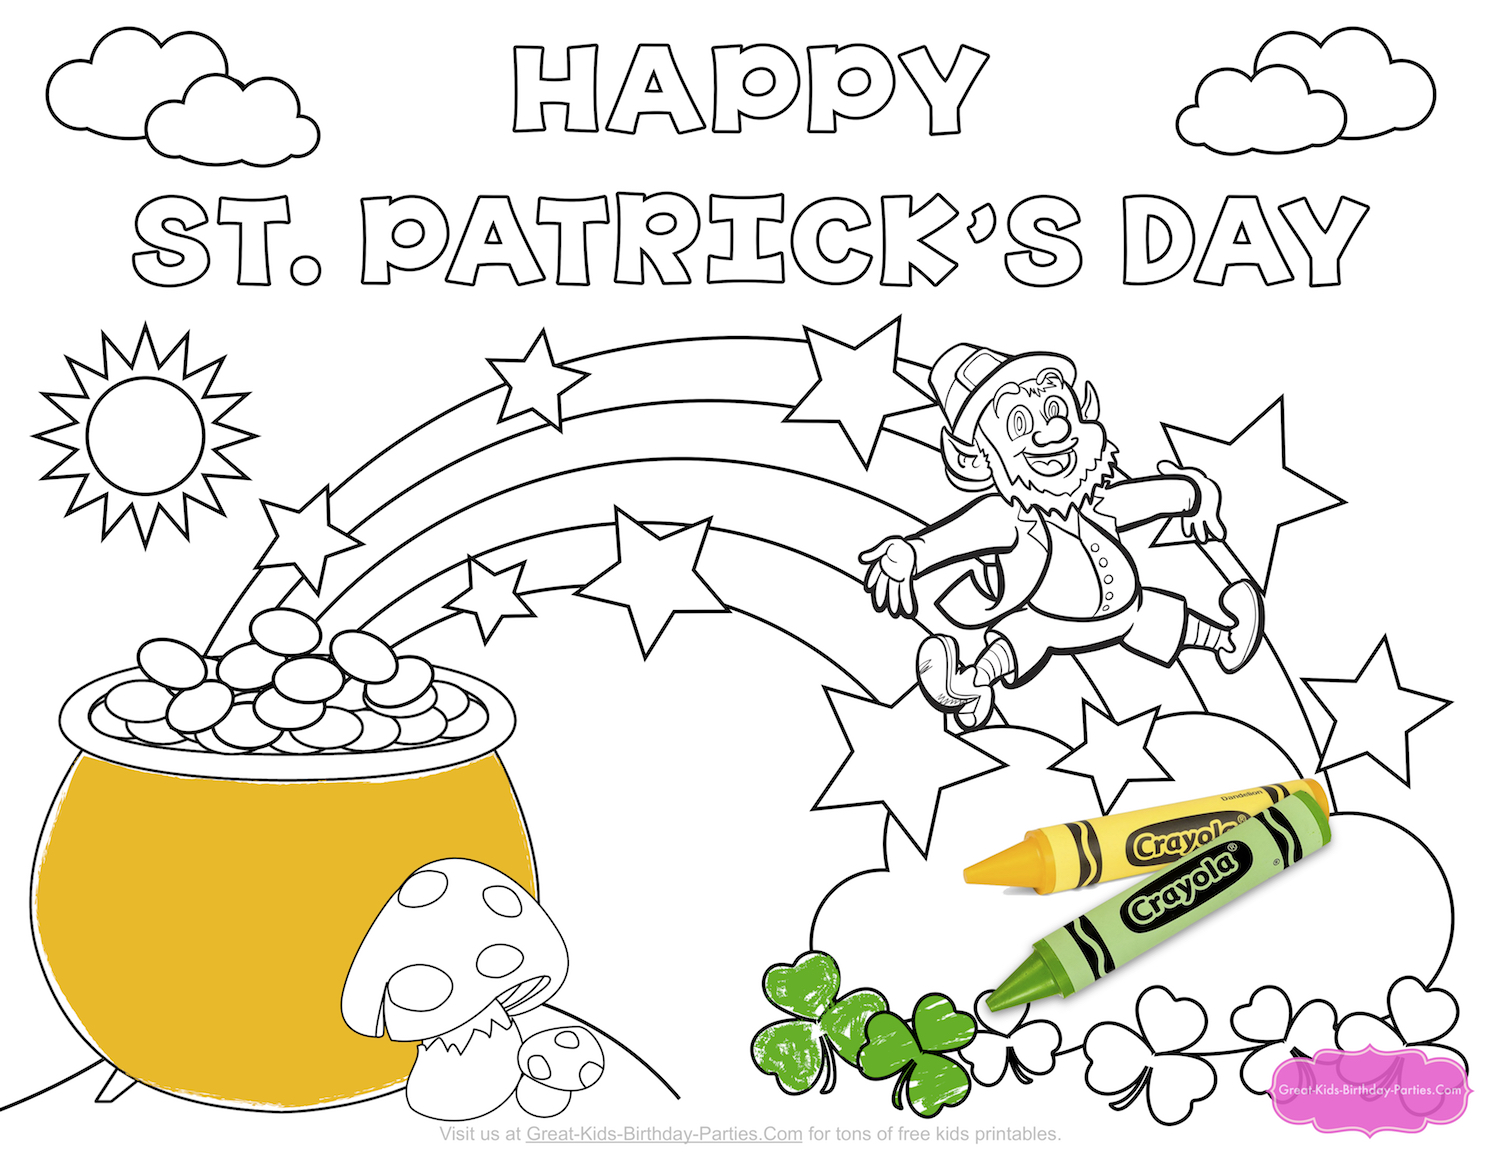 Get Luck This St Patricks Day With All Our Fun Printables Visit Page To Download The Coloring Below And Lots More